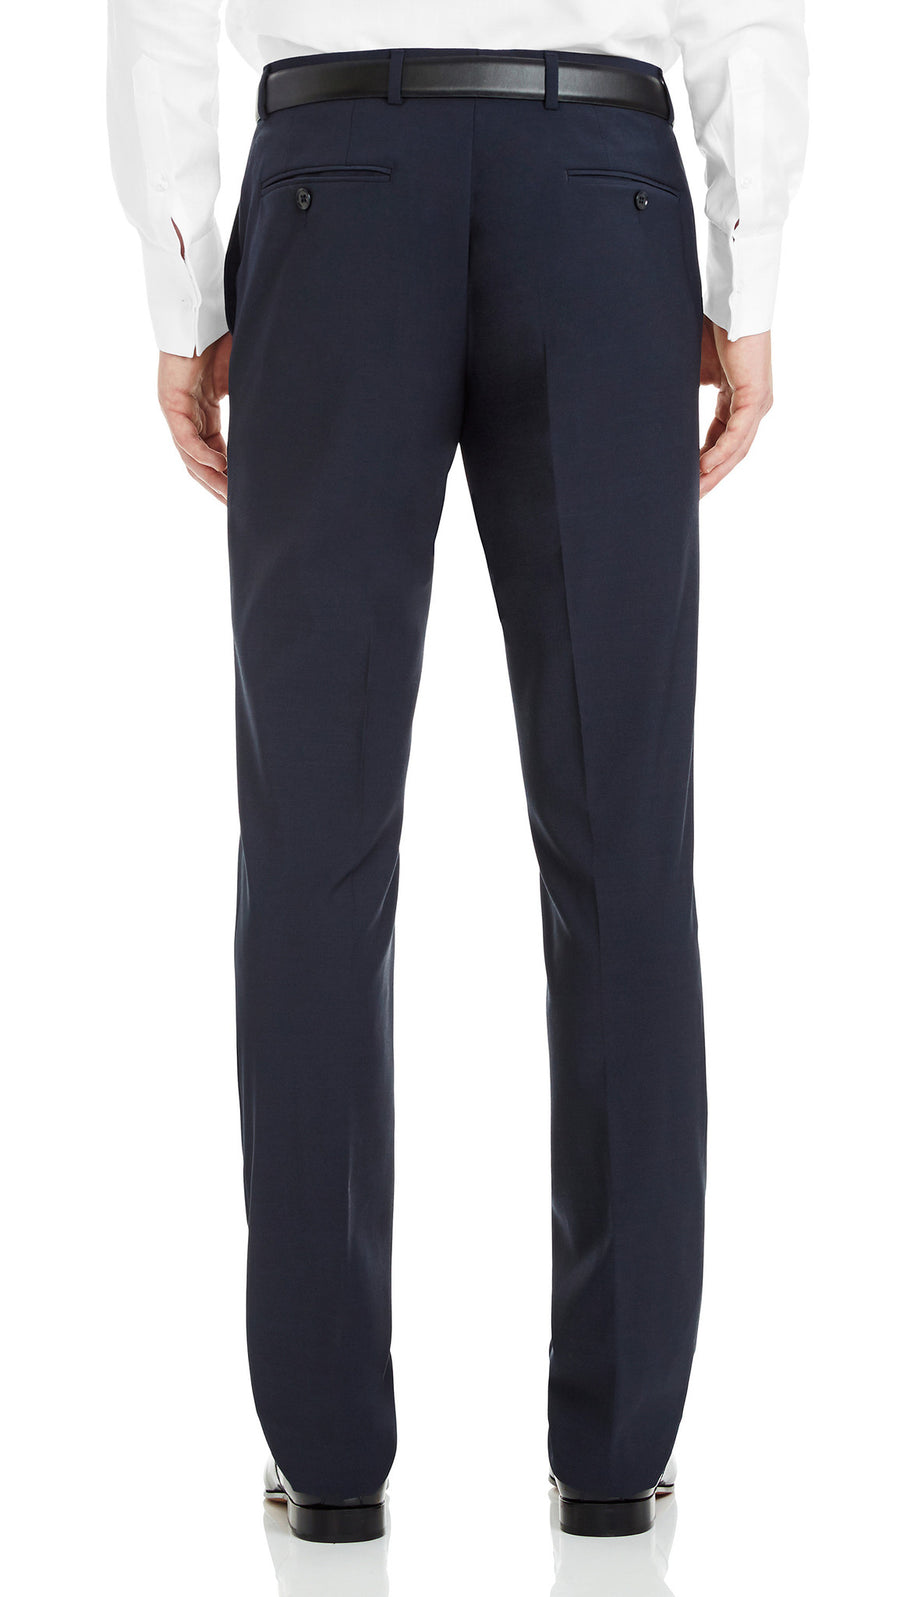 Blackjacket Slim Fit Trousers in Dark Blue - Ron Bennett Menswear  - 1